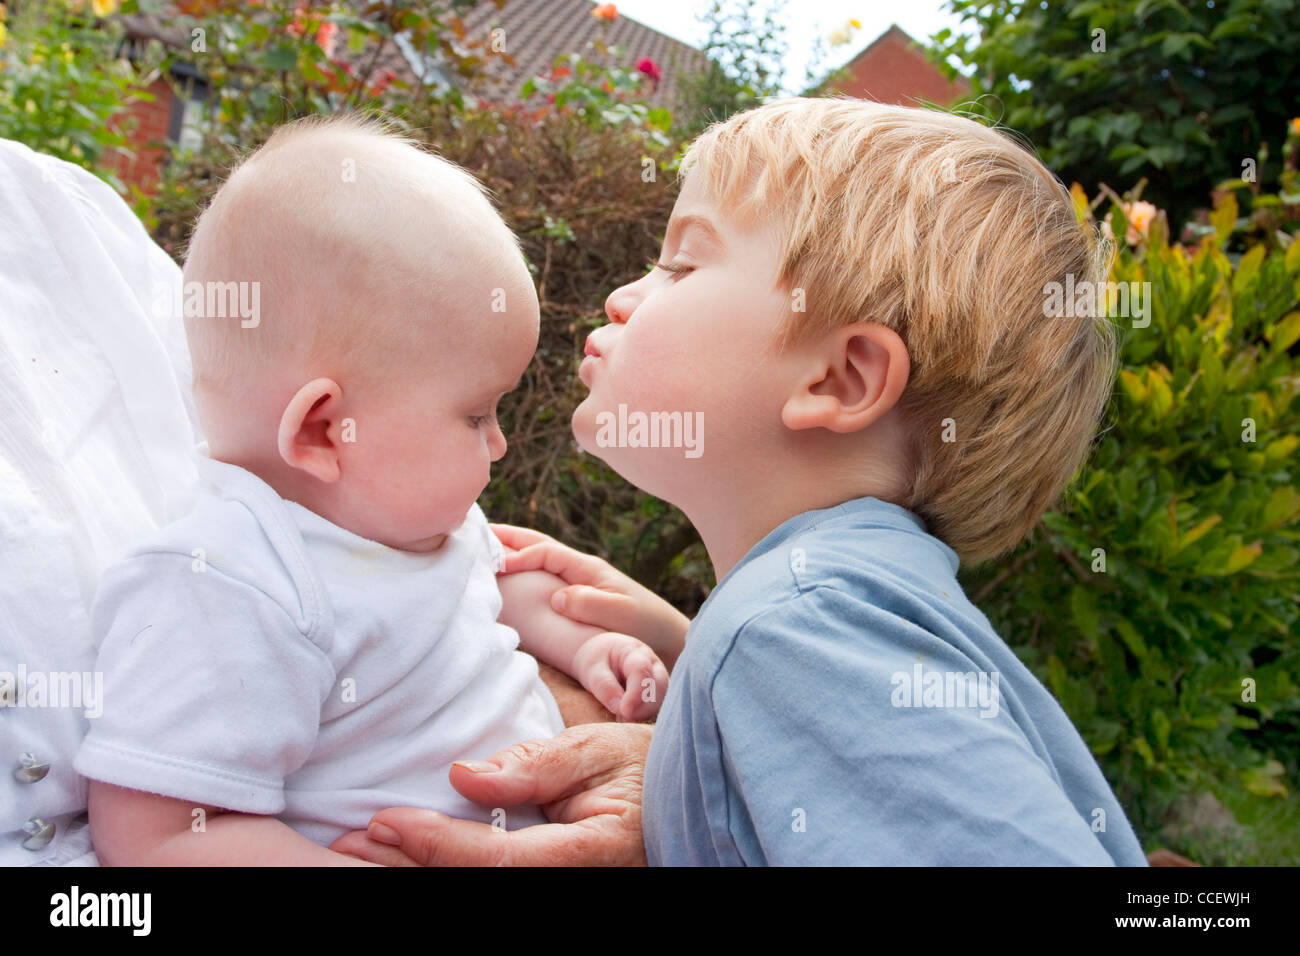 Blonde toddler age 4 kissing 6 month old baby brother and sister stock image